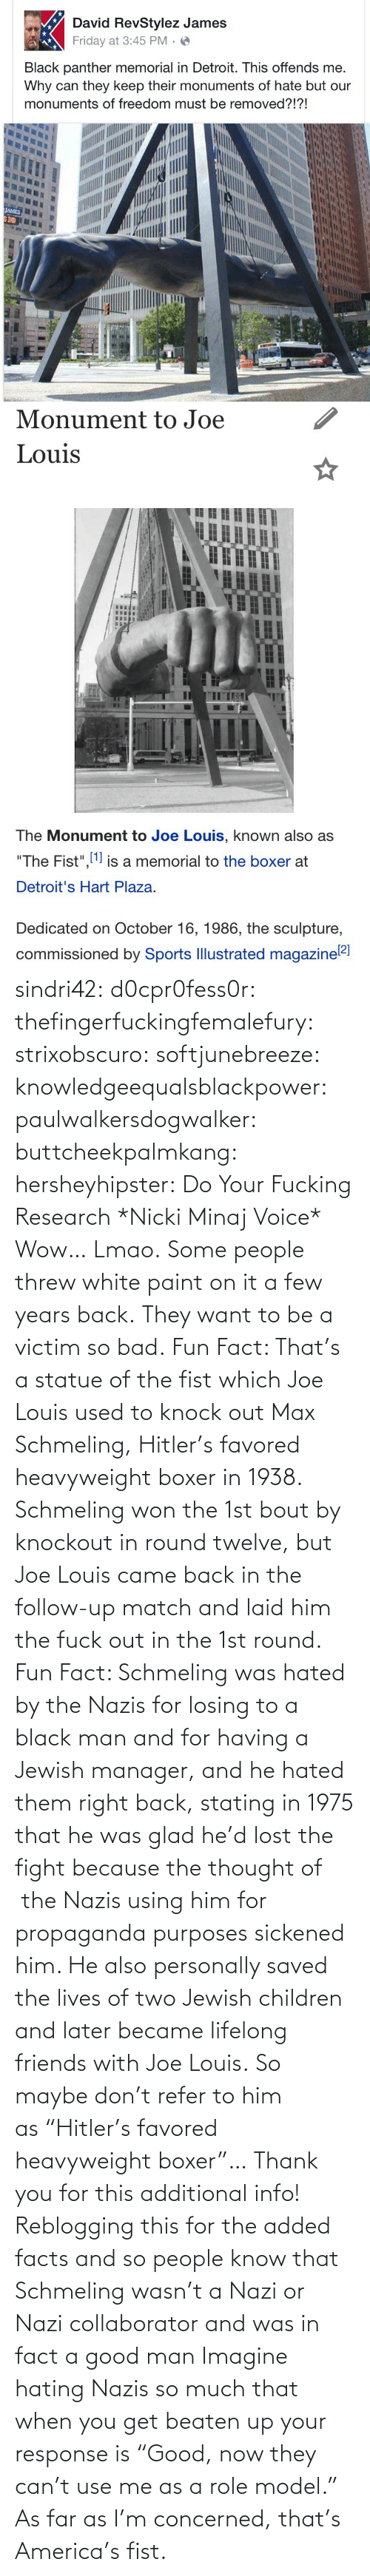 "manager: sindri42:  d0cpr0fess0r:  thefingerfuckingfemalefury:  strixobscuro:  softjunebreeze:  knowledgeequalsblackpower:  paulwalkersdogwalker:   buttcheekpalmkang:   hersheyhipster:  Do Your Fucking Research *Nicki Minaj Voice*    Wow… Lmao.   Some people threw white paint on it a few years back.   They want to be a victim so bad.  Fun Fact: That's a statue of the fist which Joe Louis used to knock out Max Schmeling, Hitler's favored heavyweight boxer in 1938. Schmeling won the 1st bout by knockout in round twelve, but Joe Louis came back in the follow-up match and laid him the fuck out in the 1st round.  Fun Fact: Schmeling was hated by the Nazis for losing to a black man and for having a Jewish manager, and he hated them right back, stating in 1975 that he was glad he'd lost the fight because the thought of  the Nazis using him for propaganda purposes sickened him. He also personally saved the lives of two Jewish children and later became lifelong friends with Joe Louis. So maybe don't refer to him as ""Hitler's favored heavyweight boxer""…  Thank you for this additional info! Reblogging this for the added facts and so people know that Schmeling wasn't a Nazi or Nazi collaborator and was in fact a good man   Imagine hating Nazis so much that when you get beaten up your response is ""Good, now they can't use me as a role model.""  As far as I'm concerned, that's America's fist."